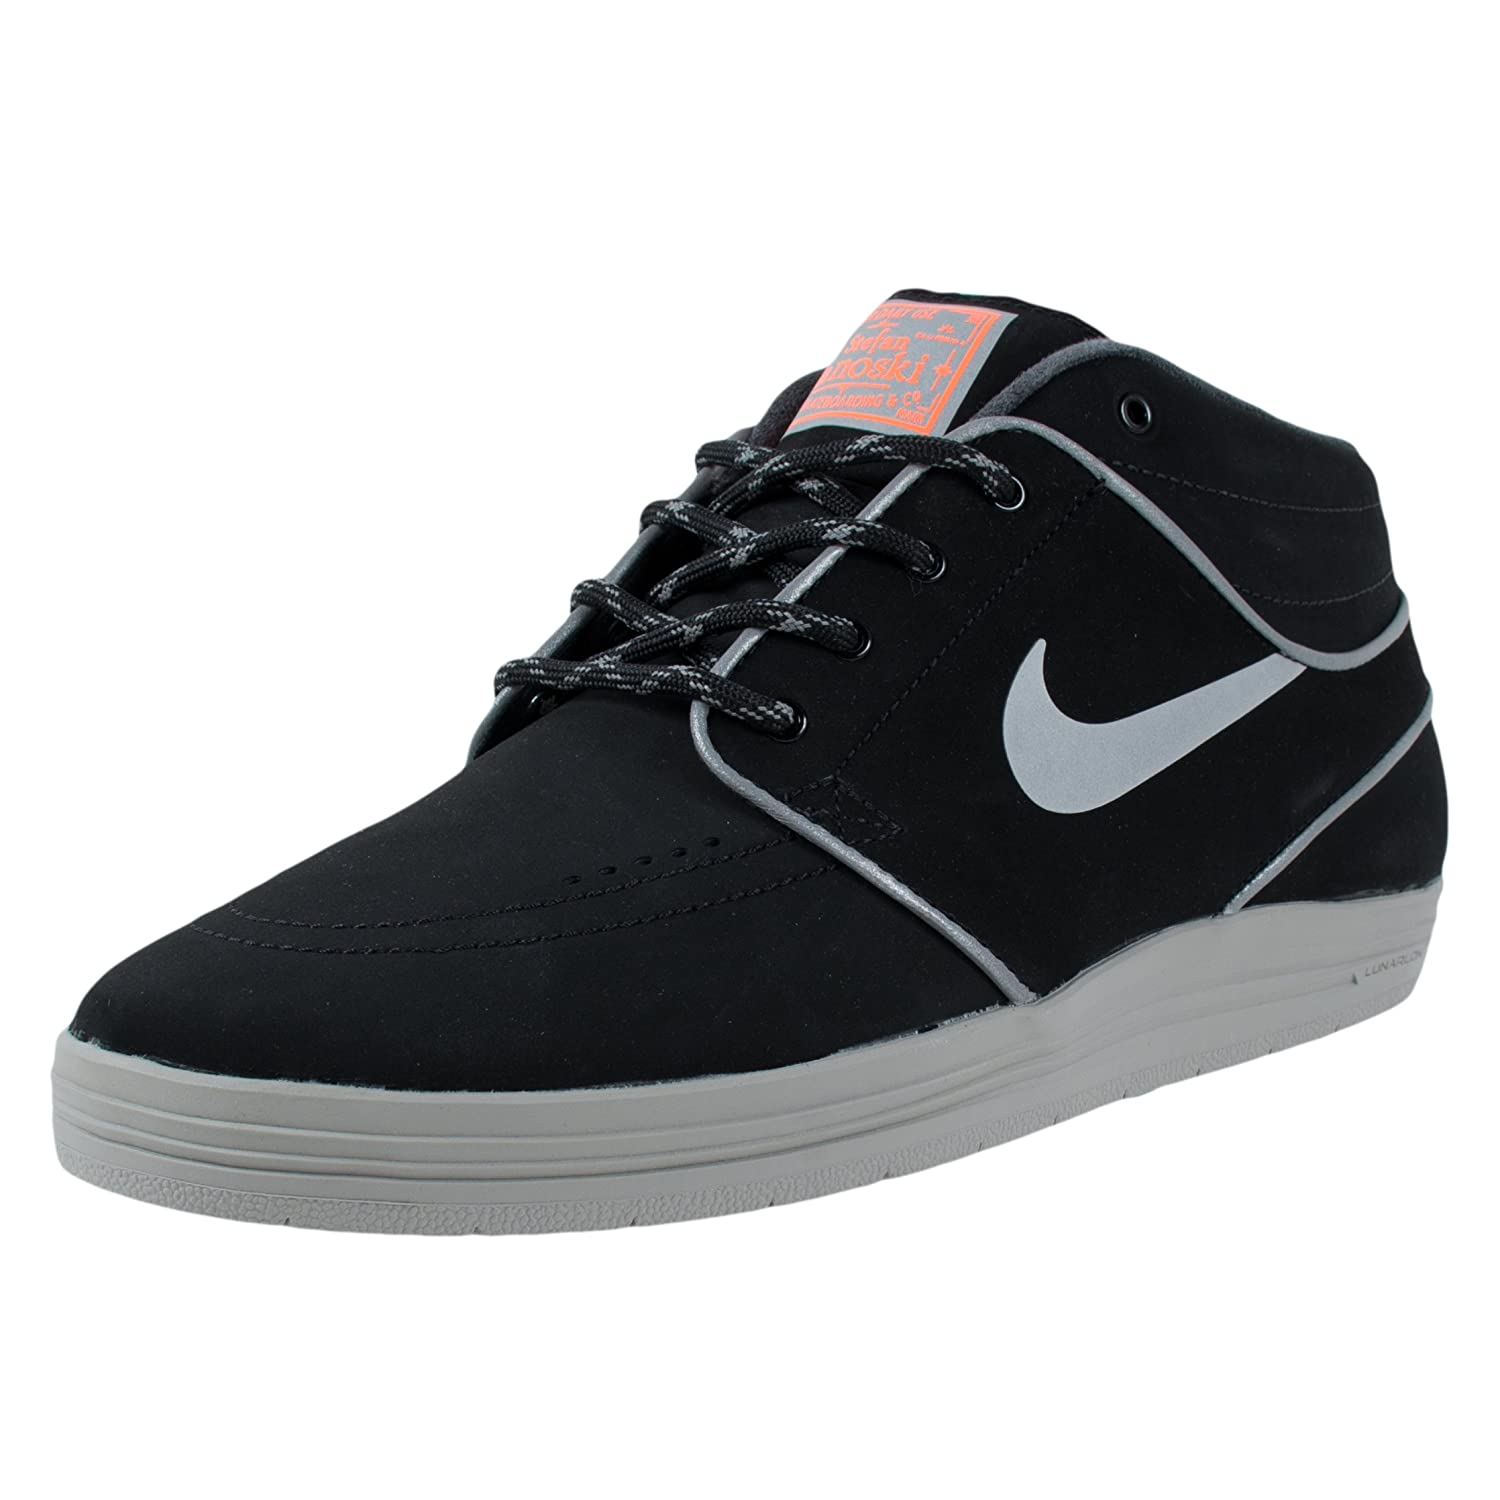 finest selection 0a186 29116 nike SB lunar stefan janoski MD shield mens trainers 707228 sneakers shoes  (uk 6 us 7 eu 40, black reflective silver hyper crimson 006)  Amazon.co.uk   Shoes ...